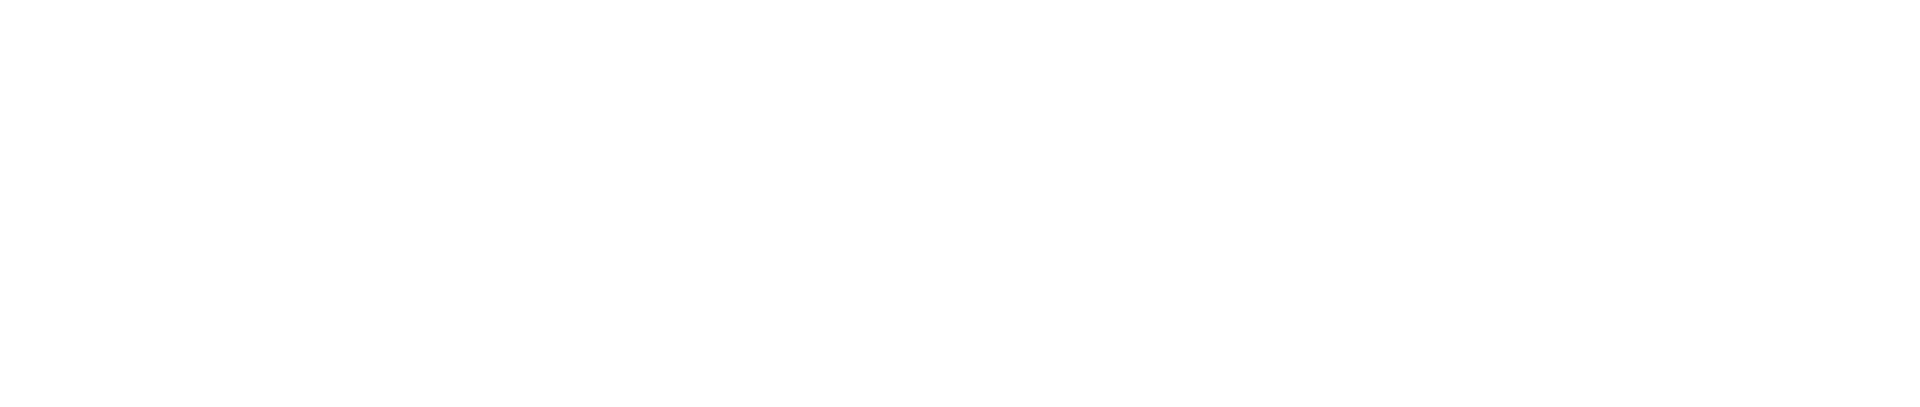 Myers Autogroup